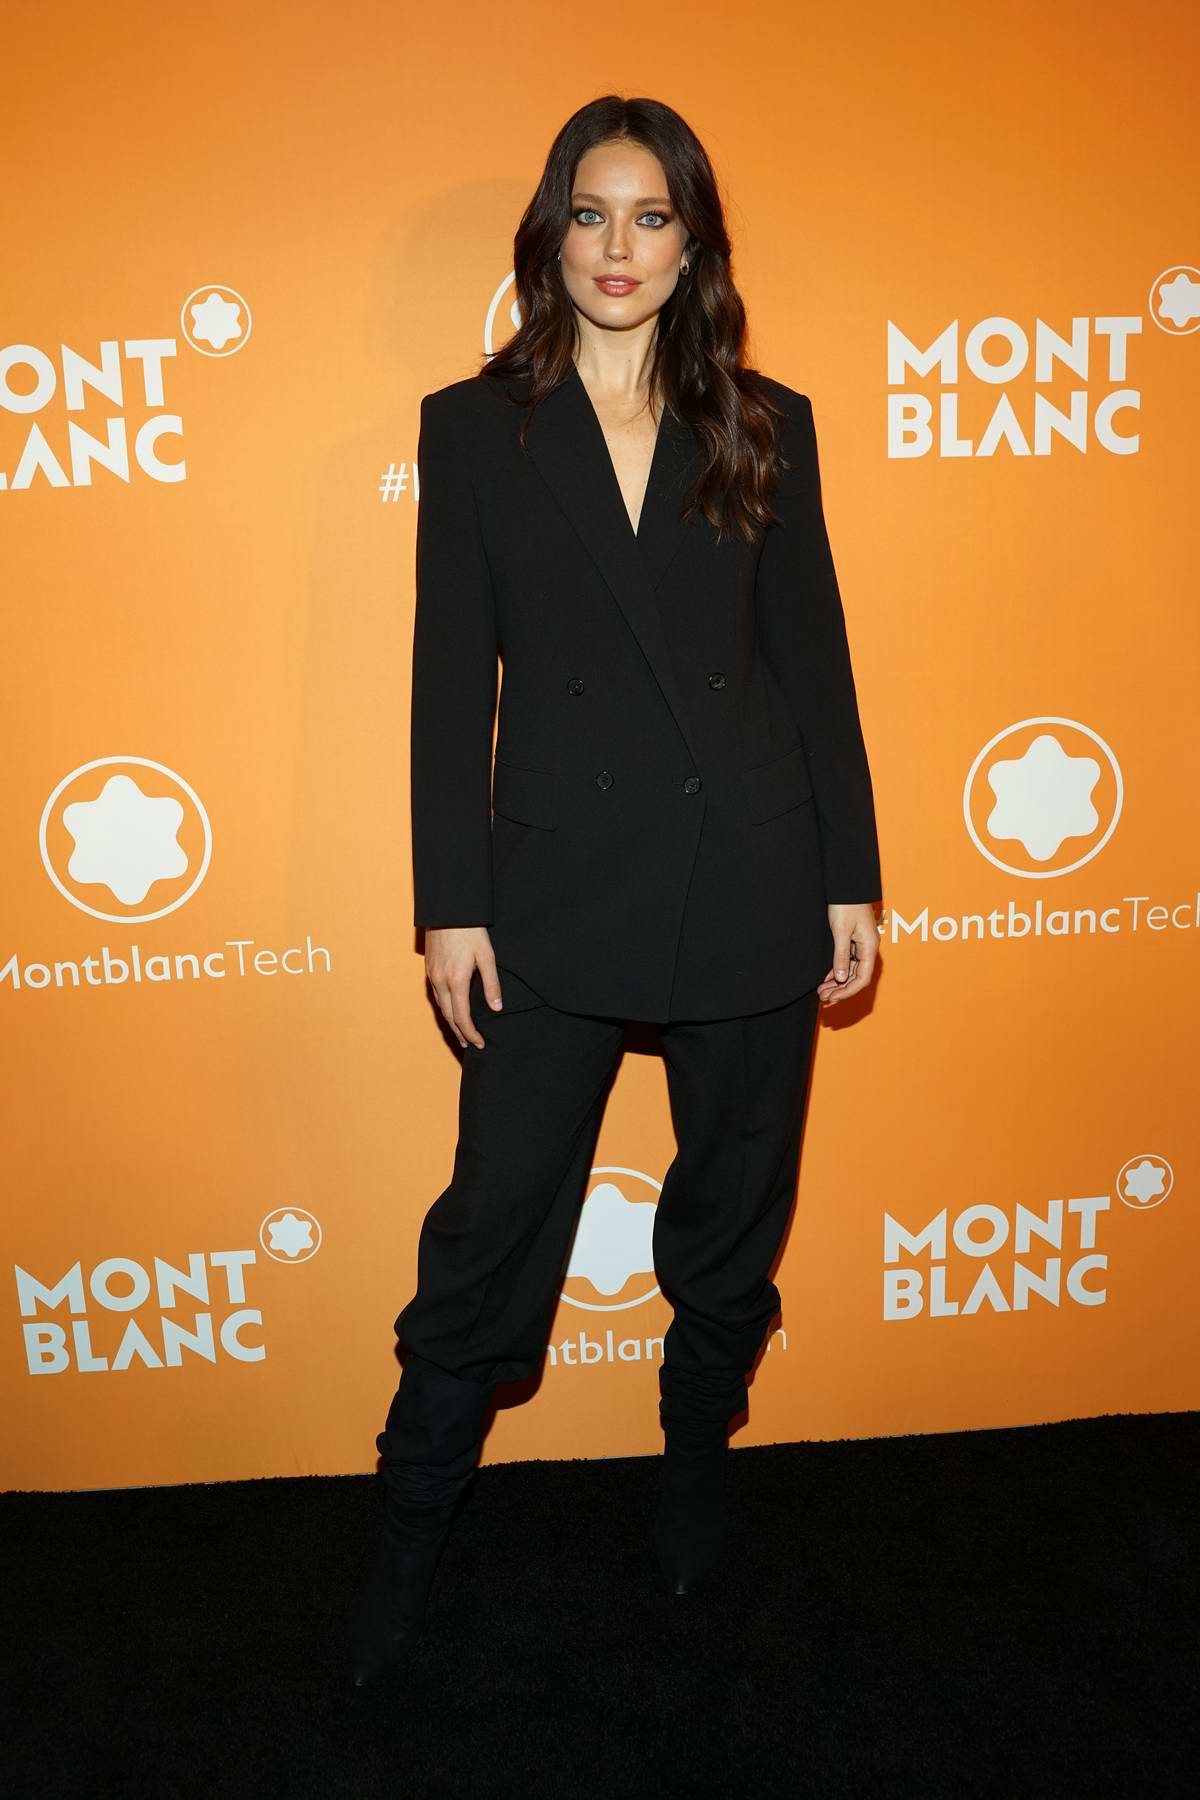 Emily DiDonato attends the Montblanc MB 01 Smart Headphones and Summit 2+ launch party in New York City